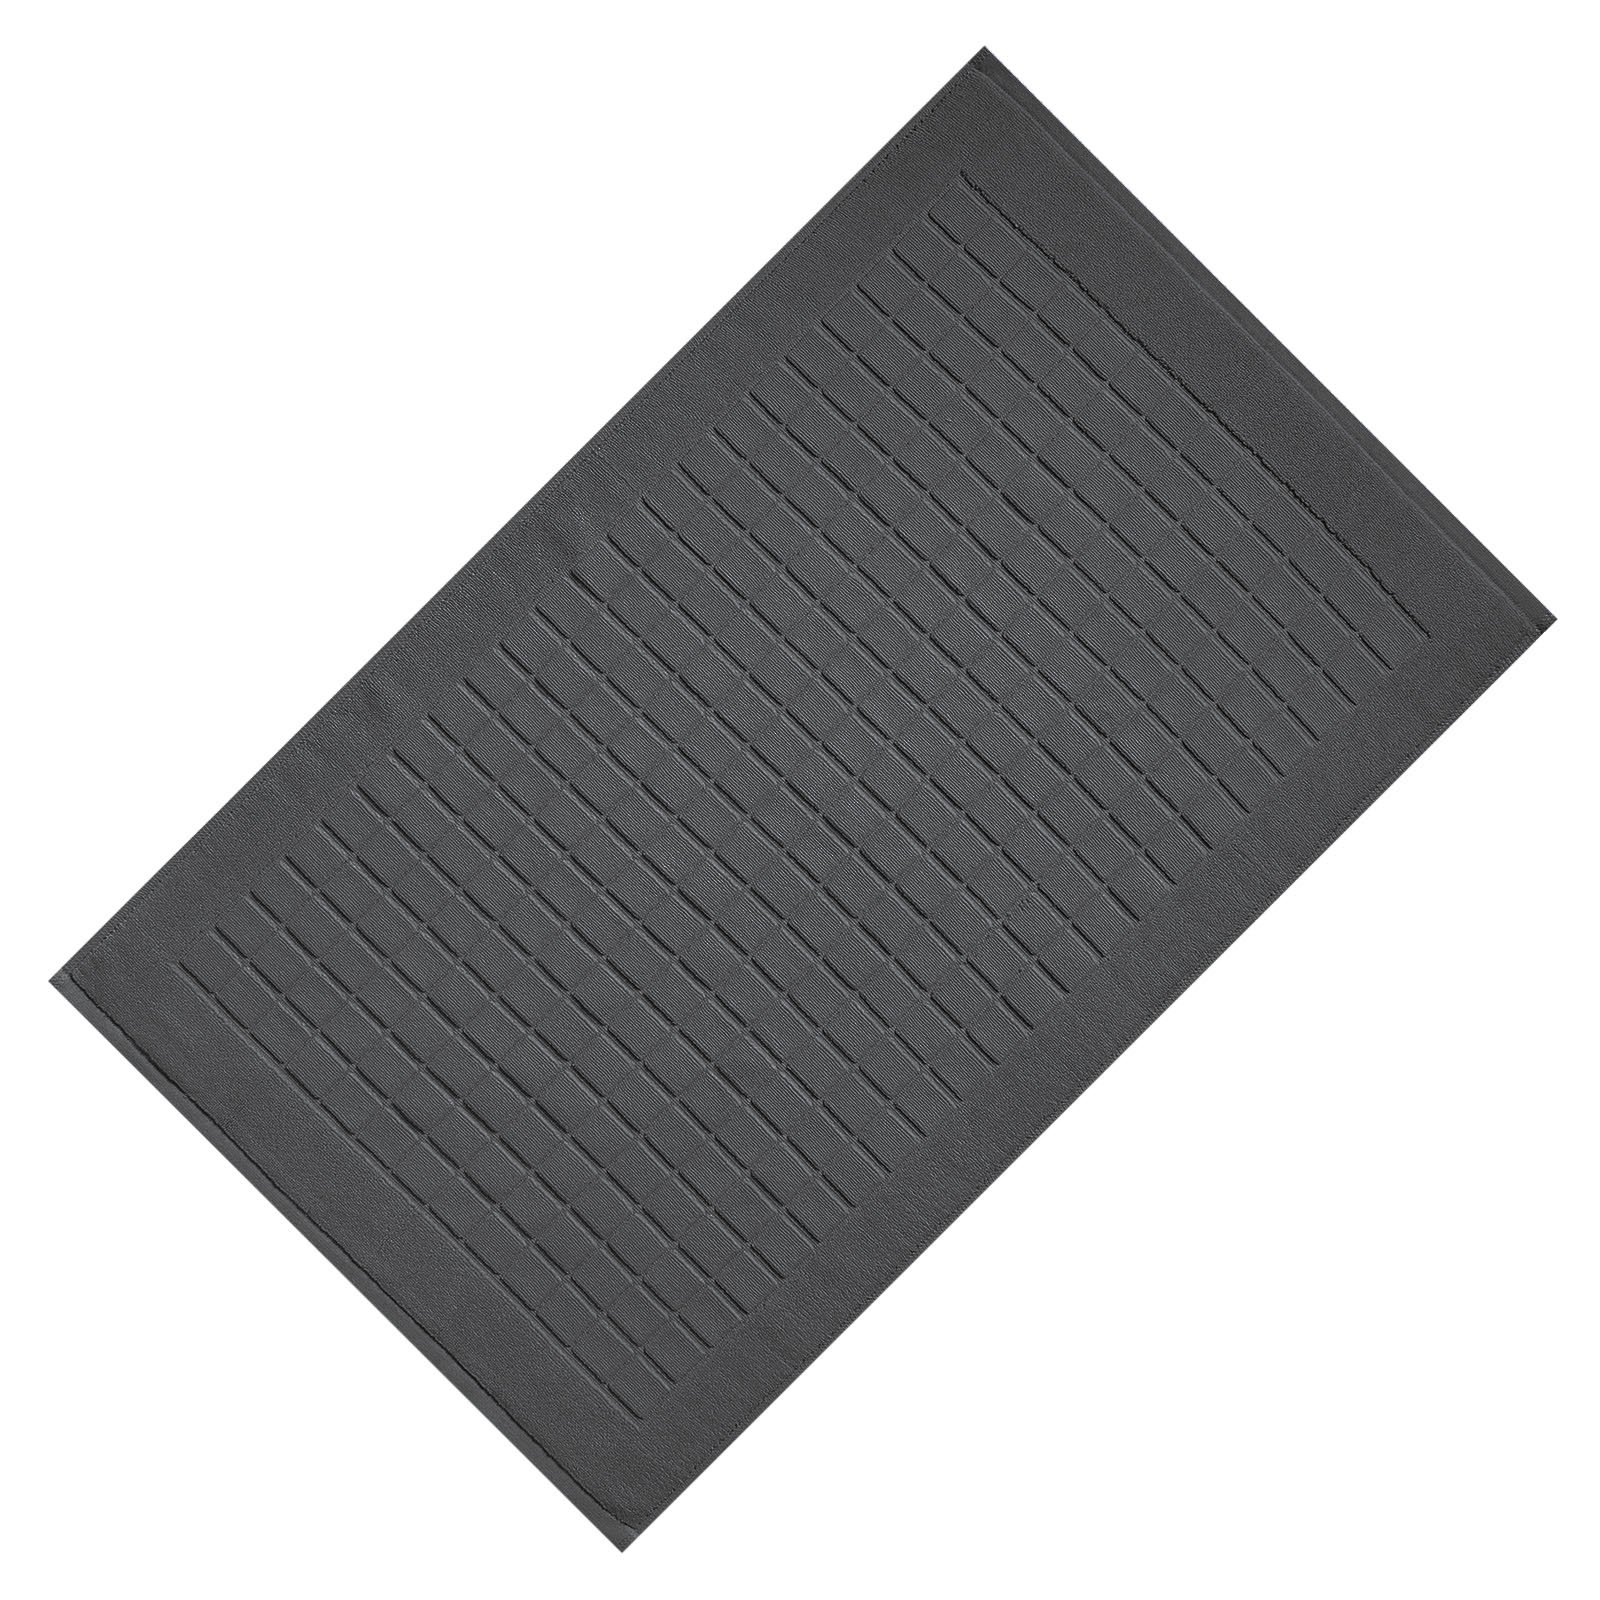 VEEYOO 20''x32'' Cotton Bath Mat for Shower, Luxury Hotel and Spa Quality Washable Bathroom Mat 1 Pack, Charcoal Checkered